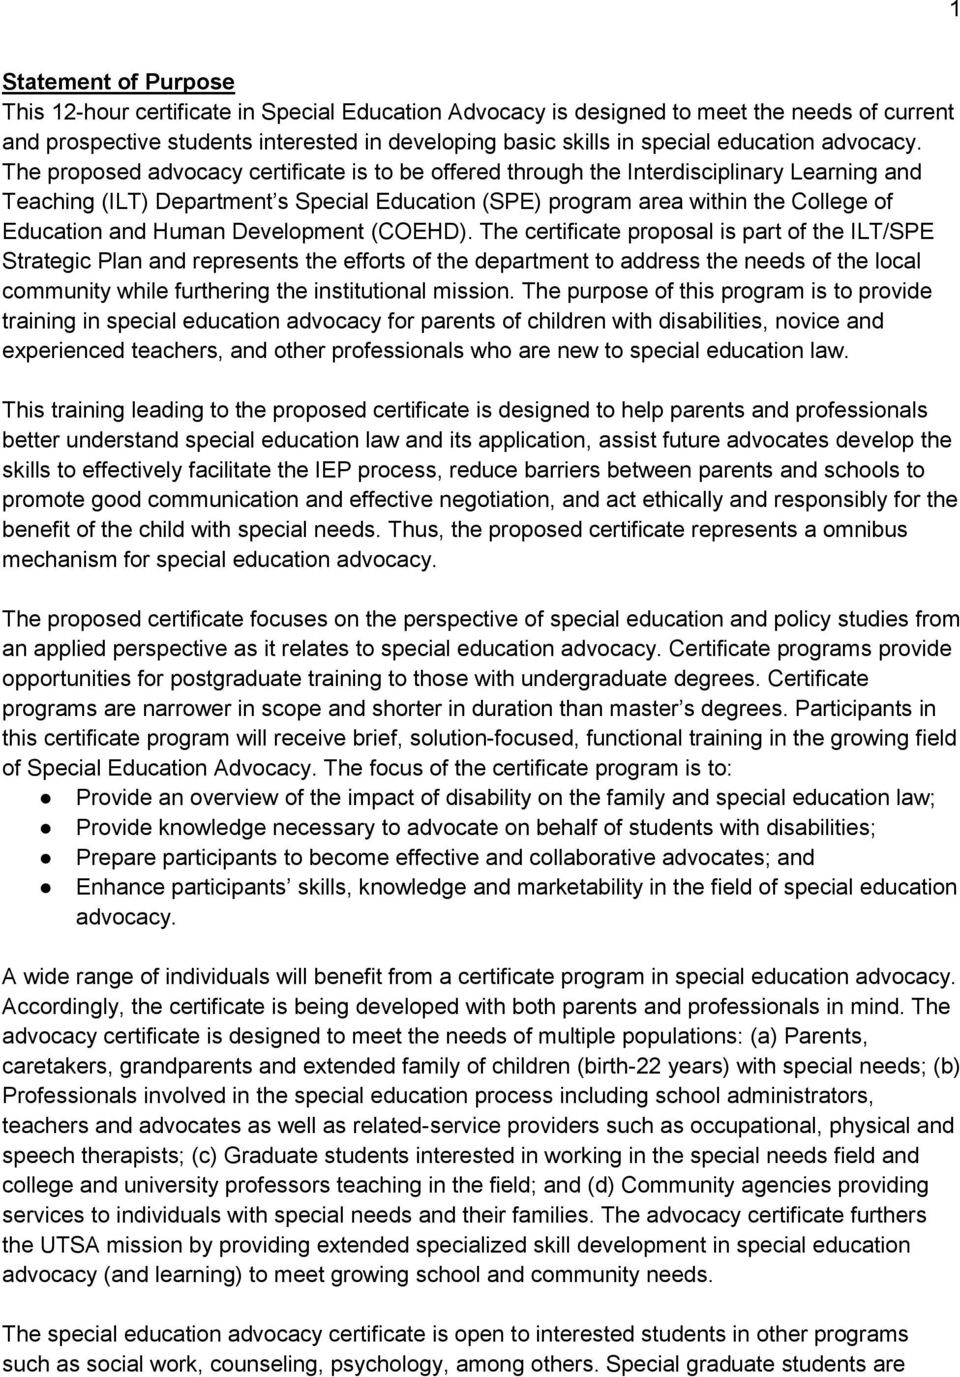 The proposed advocacy certificate is to be offered through the Interdisciplinary Learning and Teaching (ILT) Department s Special Education (SPE) program area within the College of Education and